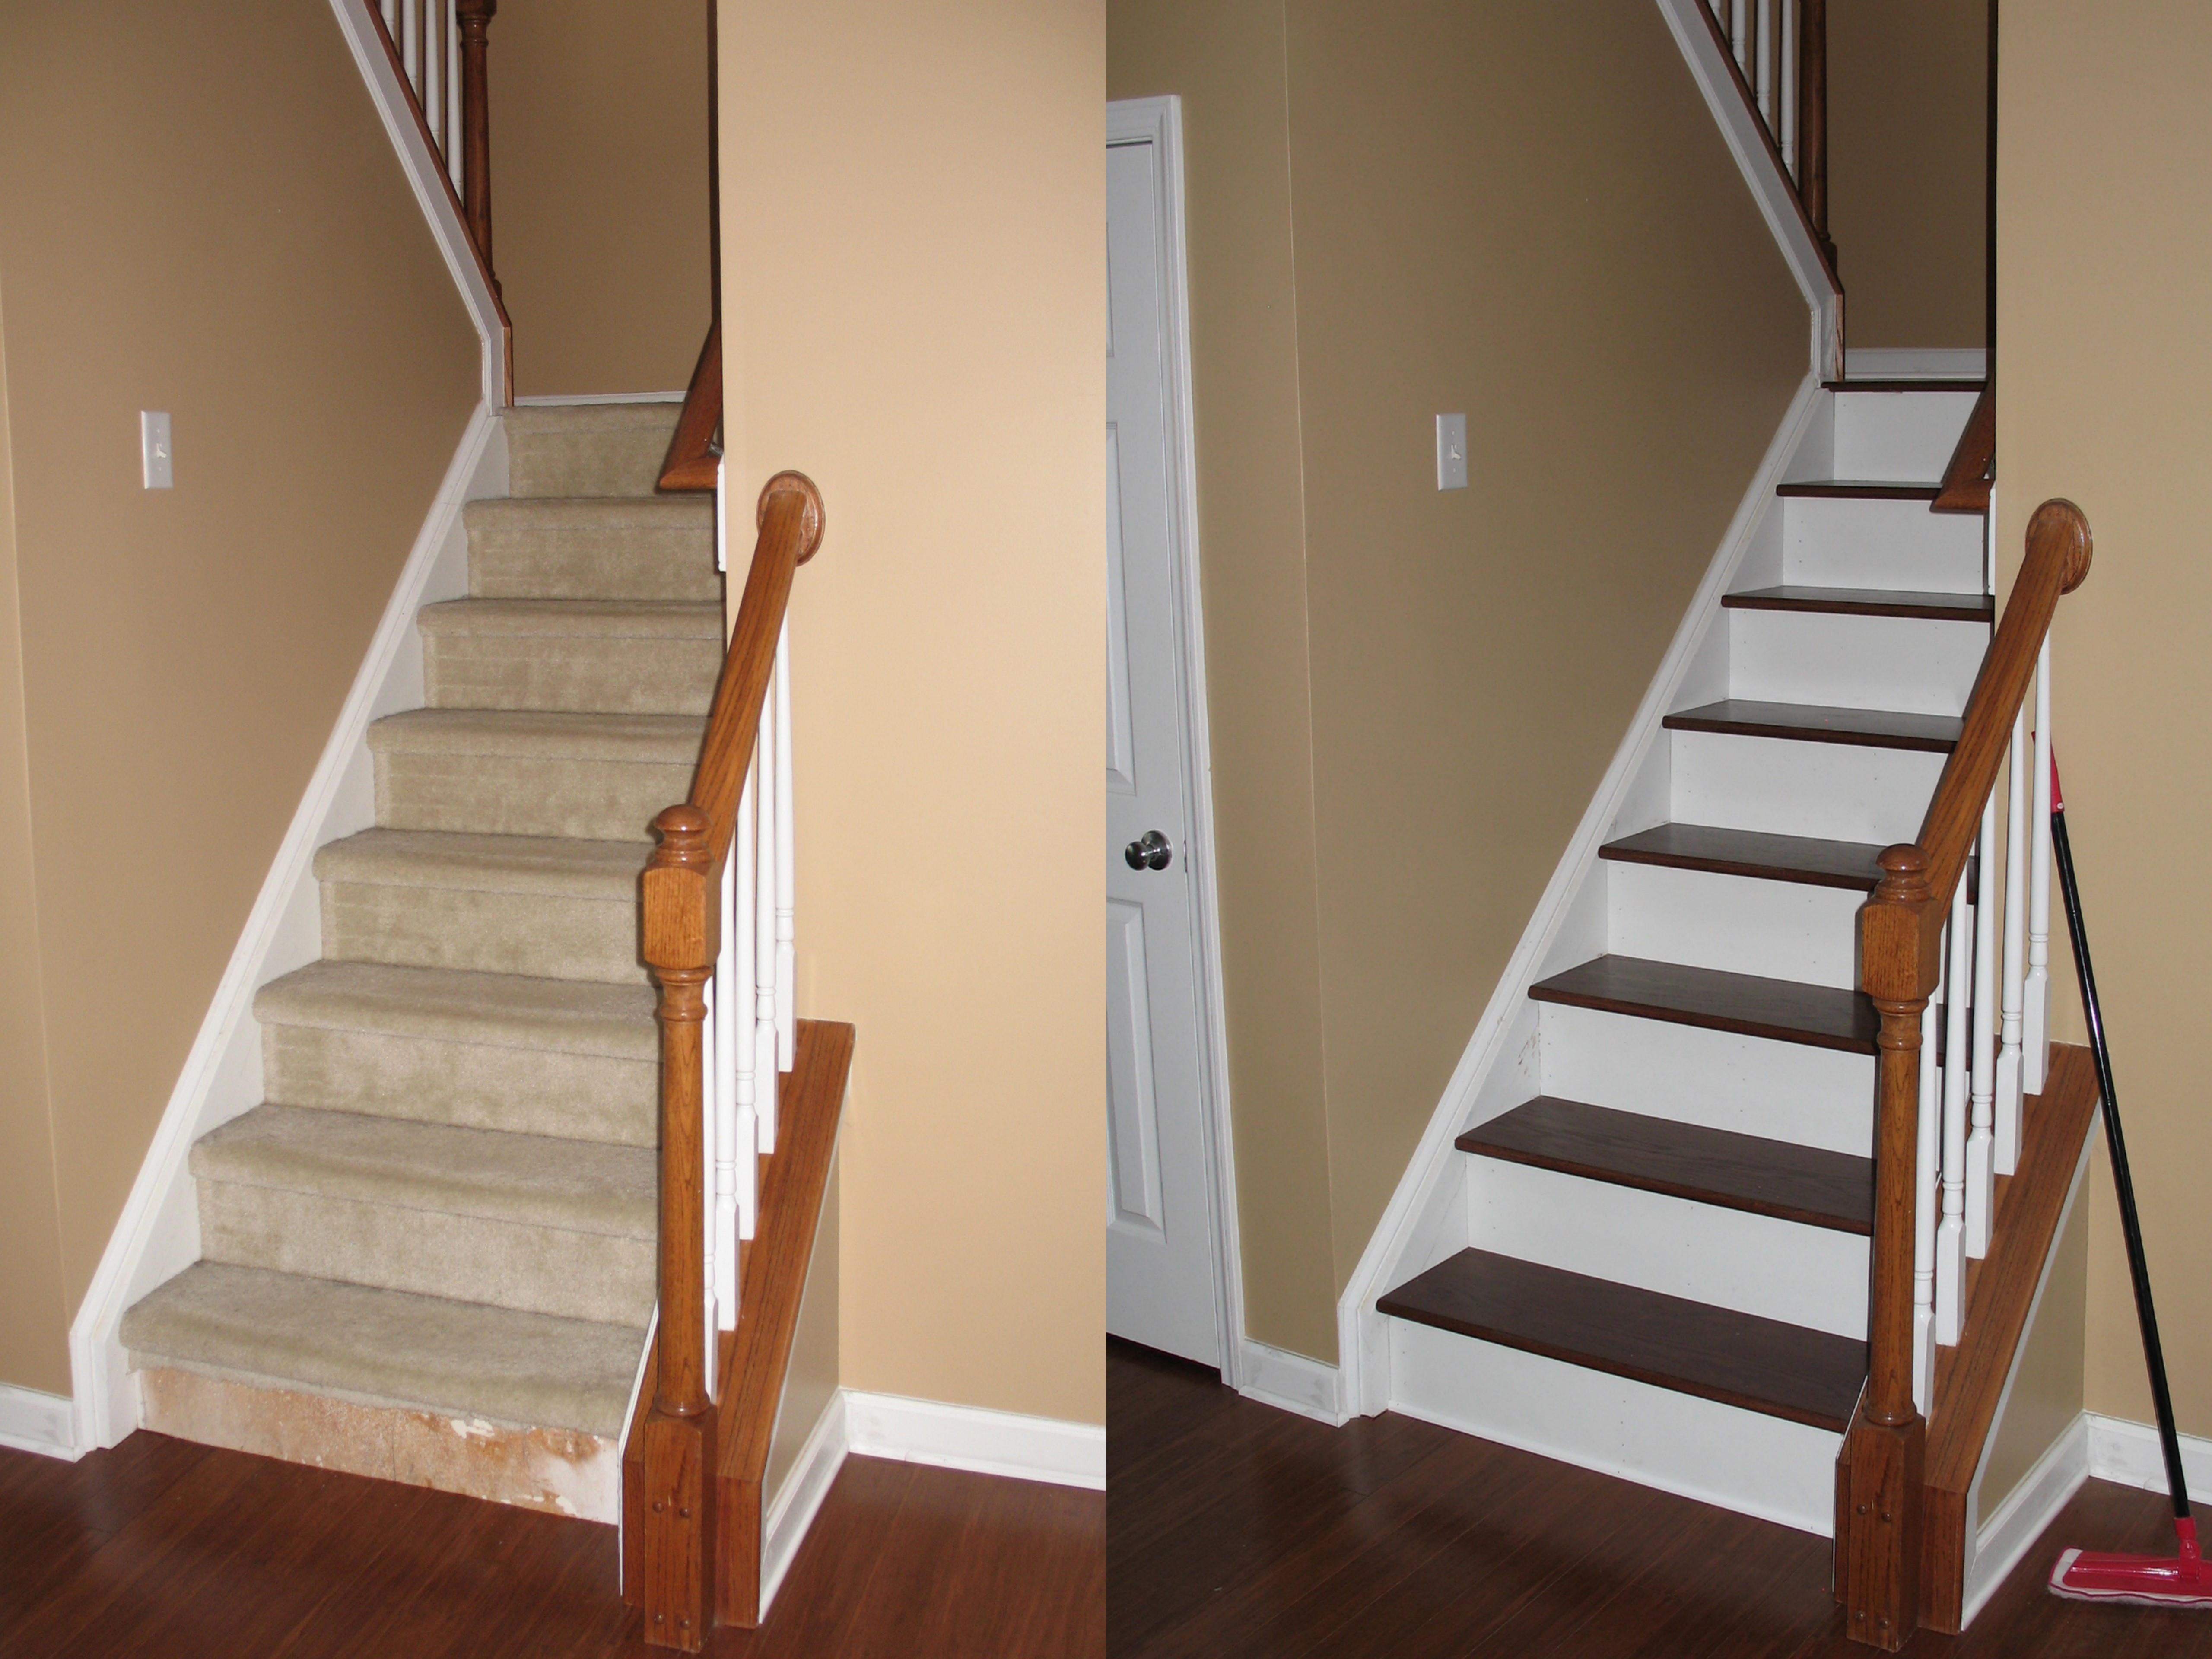 Capital stair makeover raleigh nc 27609 angies list - Trappen rots ...